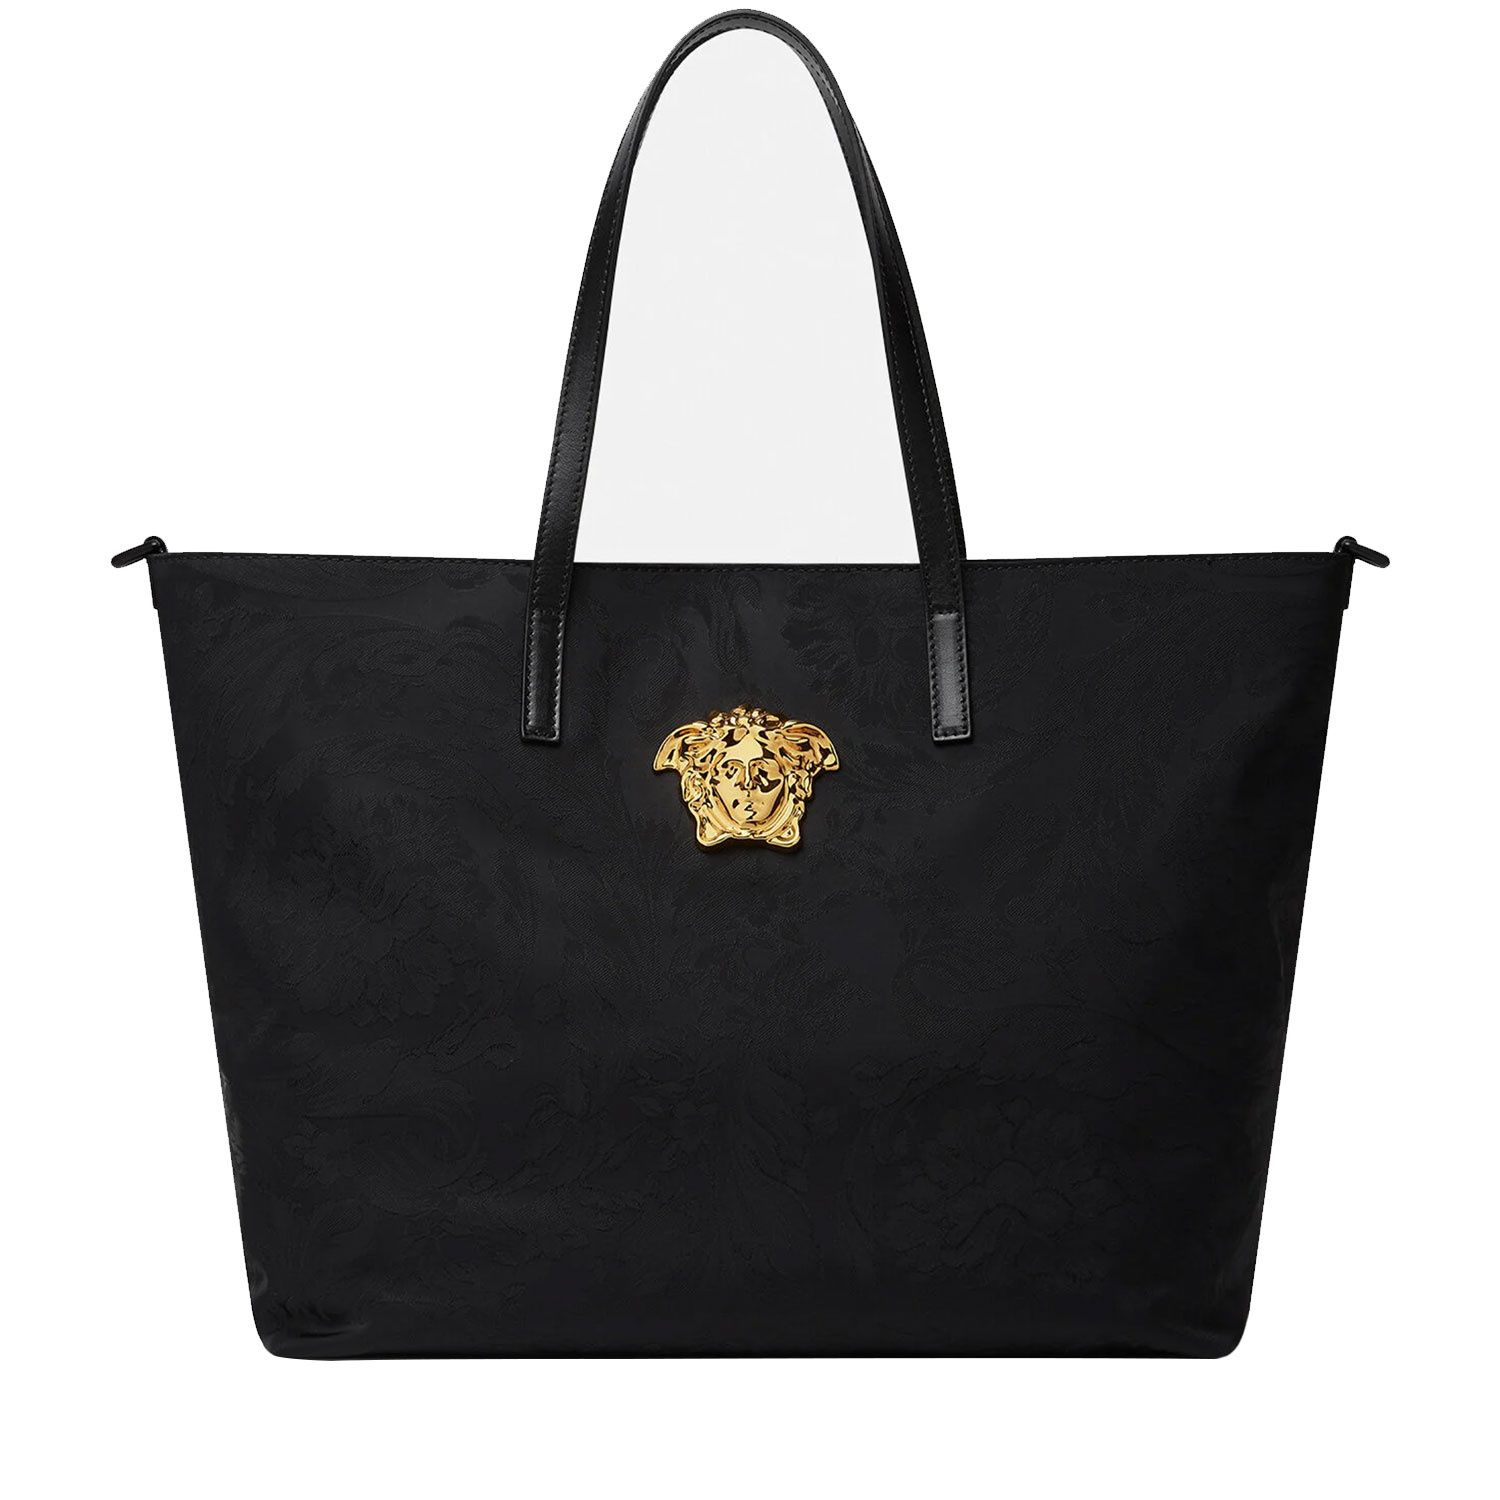 Picture of Versace 1001630 1A01277 diaper bags black